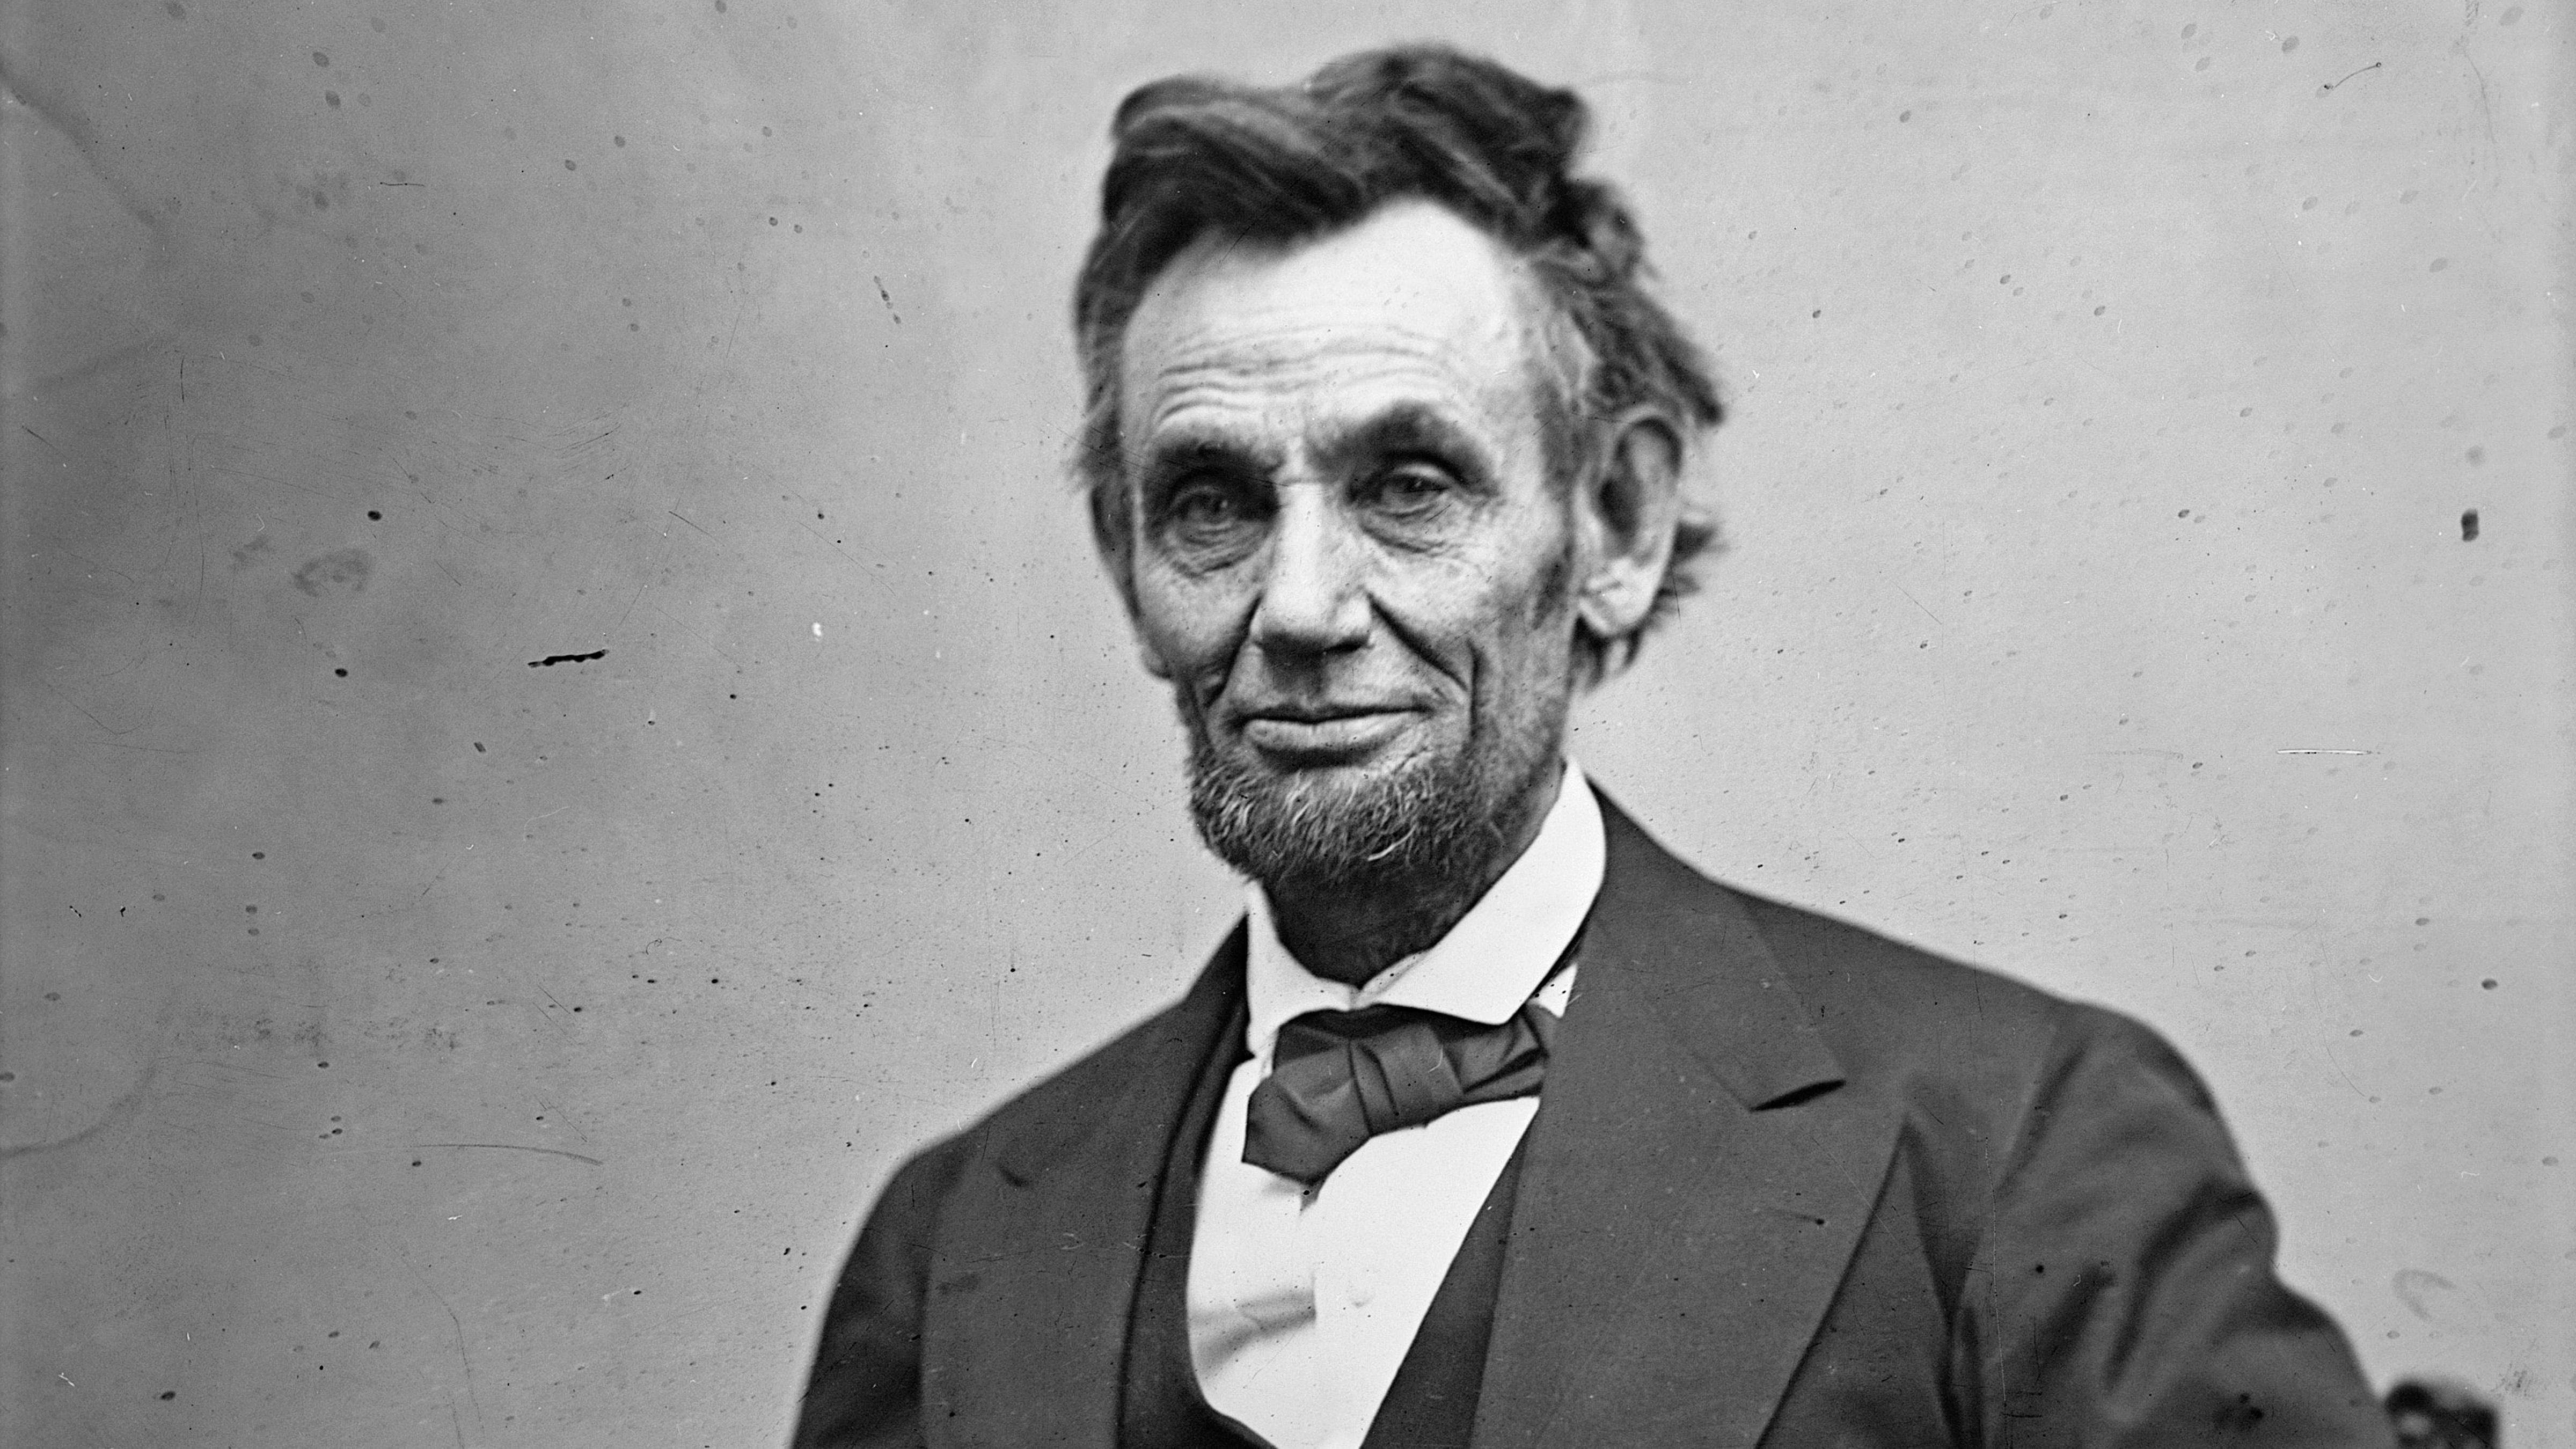 Extended Interview: New insights into Abraham Lincoln